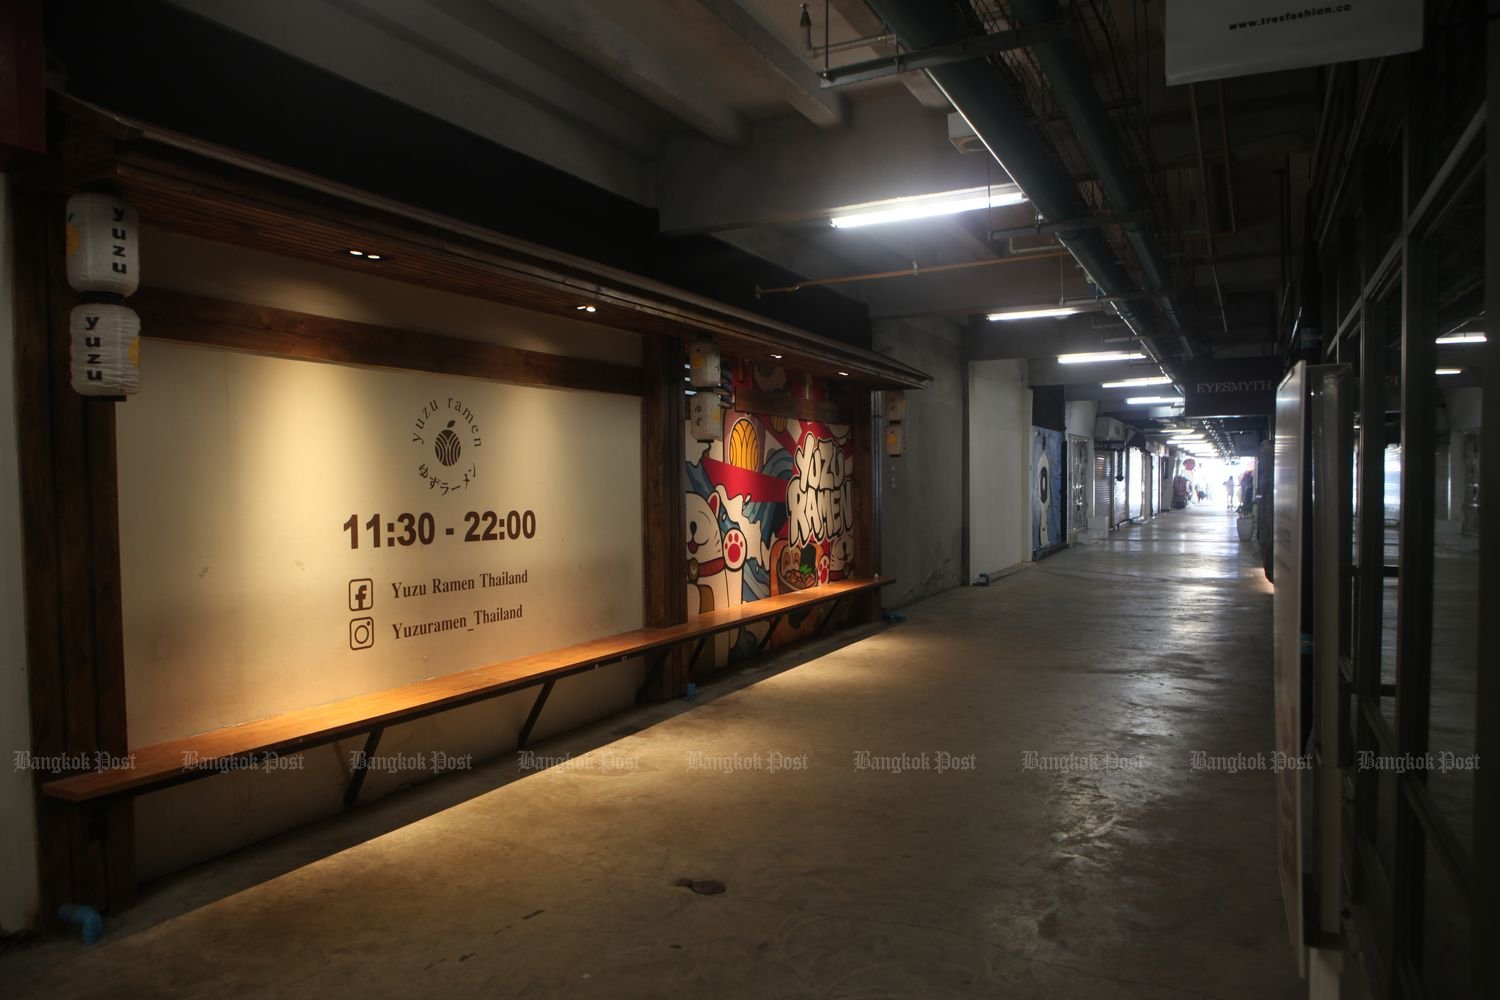 Shops at Siam Square in Bangkok are closed on Monday as few customers visit the once-vibrant shopping district due to Covid-19 restrictions. (Photo by Apichart Jinakul)